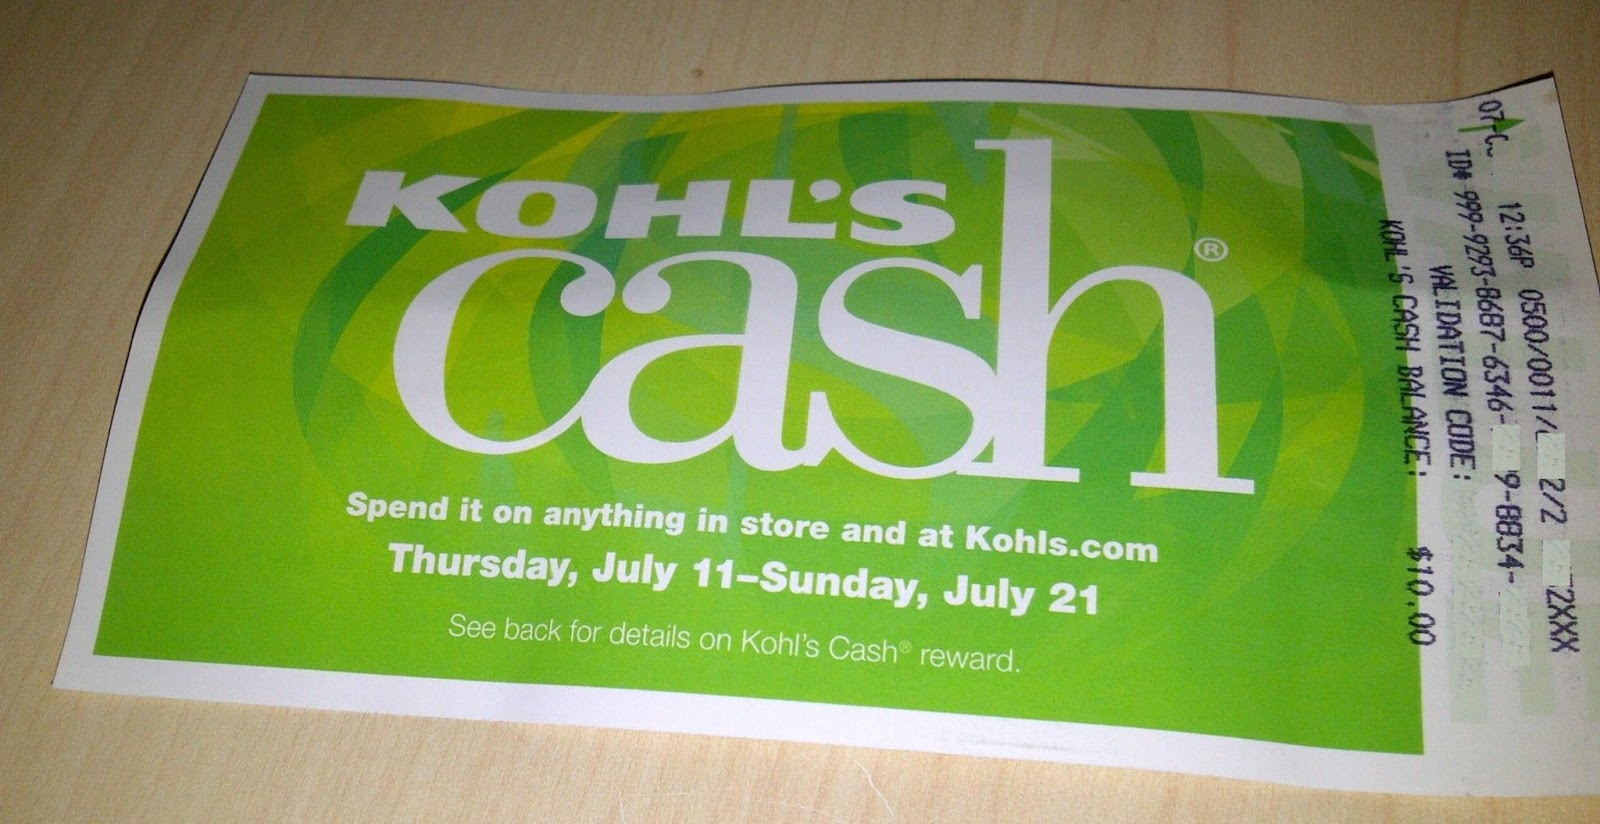 kohls Kohls 30 off coupon code in store 49k likes share kohls friends and family coupons and events here get latest kohls 30% off coupon code 2018 and.